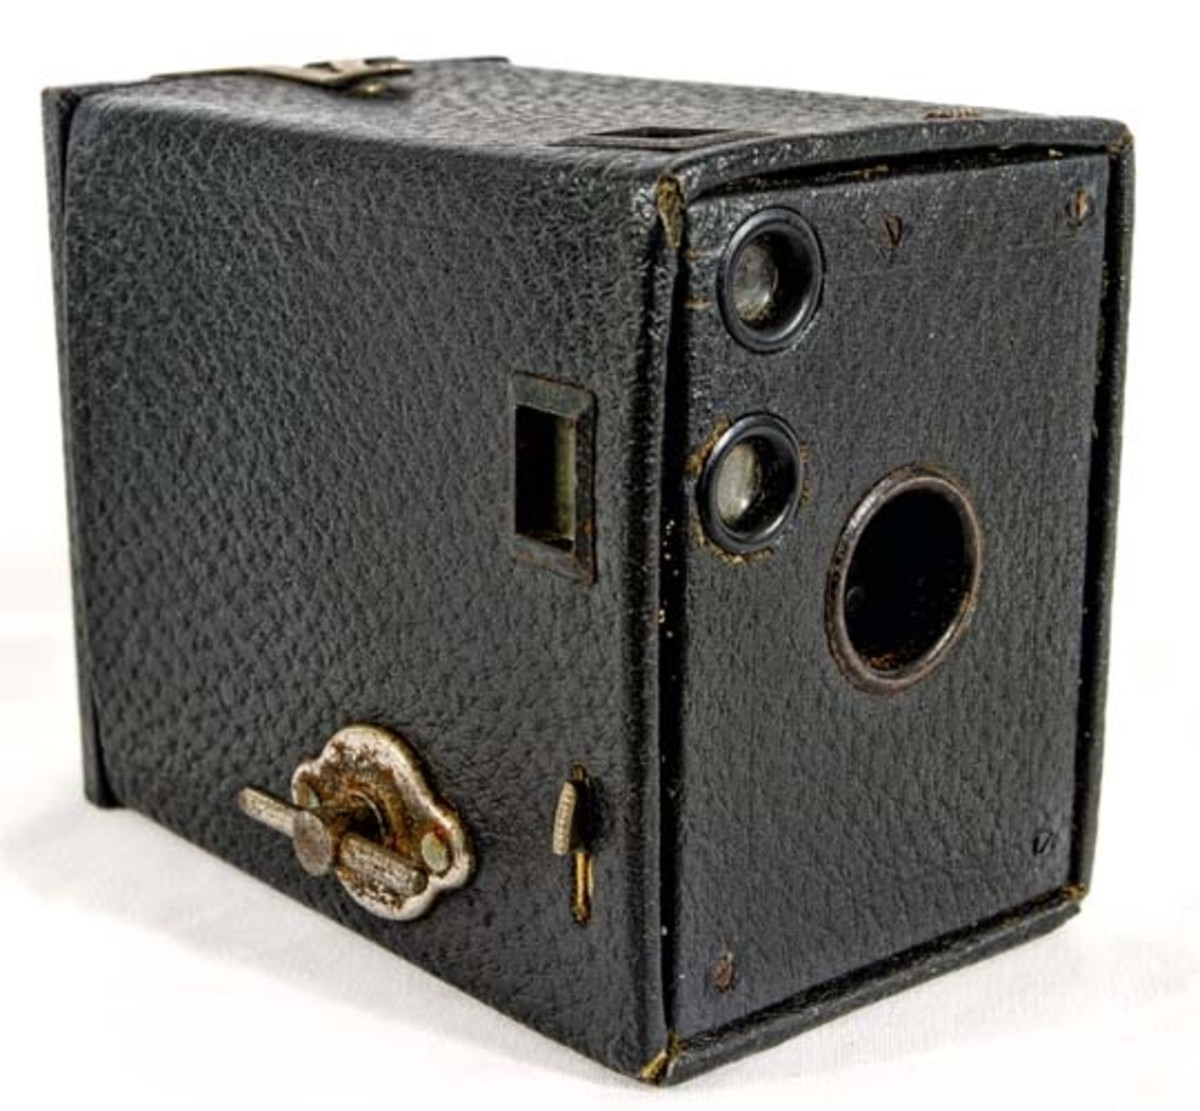 Eastman Kodak Brownie